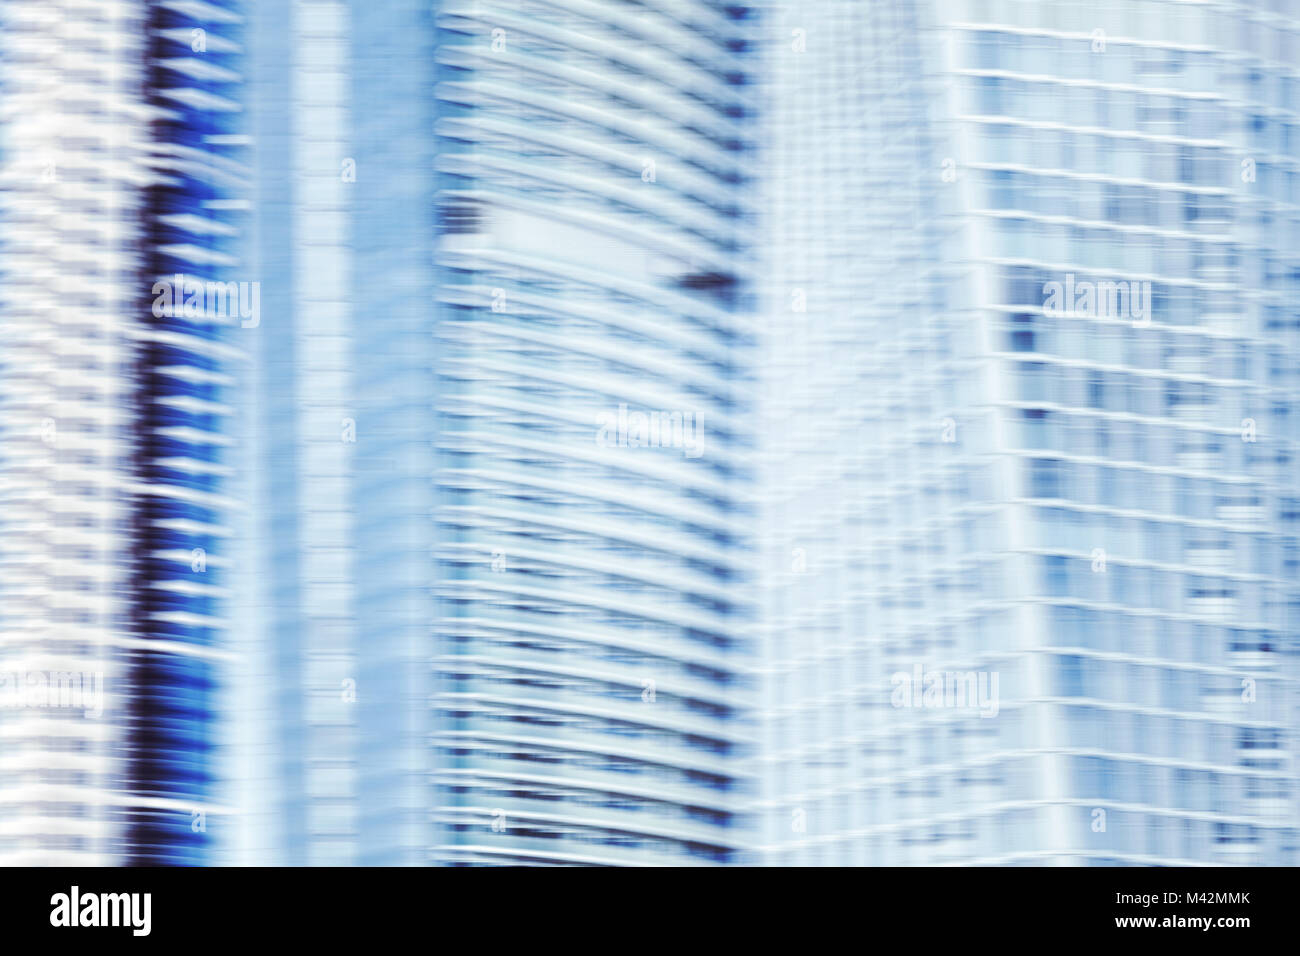 Abstract futuristic background made of motion blurred office buildings. - Stock Image